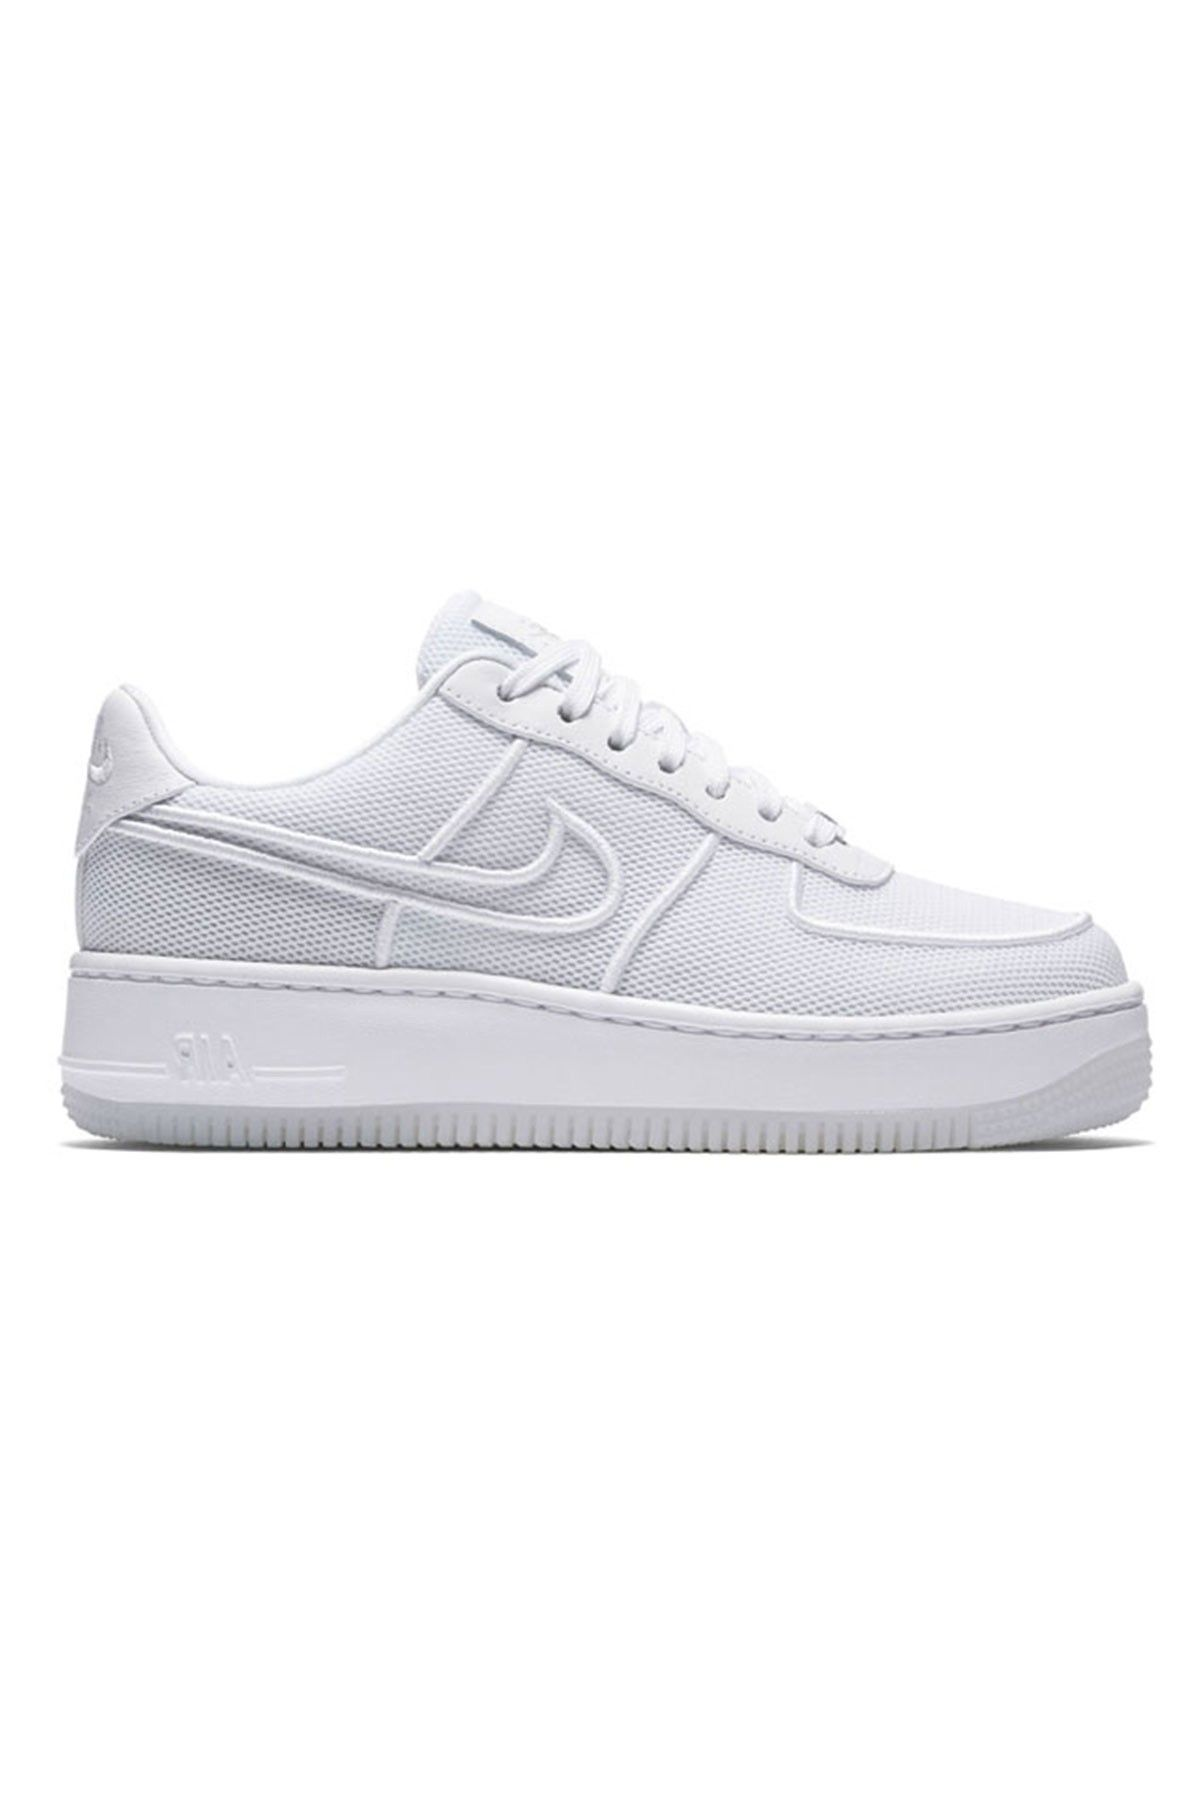 27772250 Air Force 1 Low Upstep BR Beyaz Kadın Ayakkabı | Nike Air Force 1 's ...